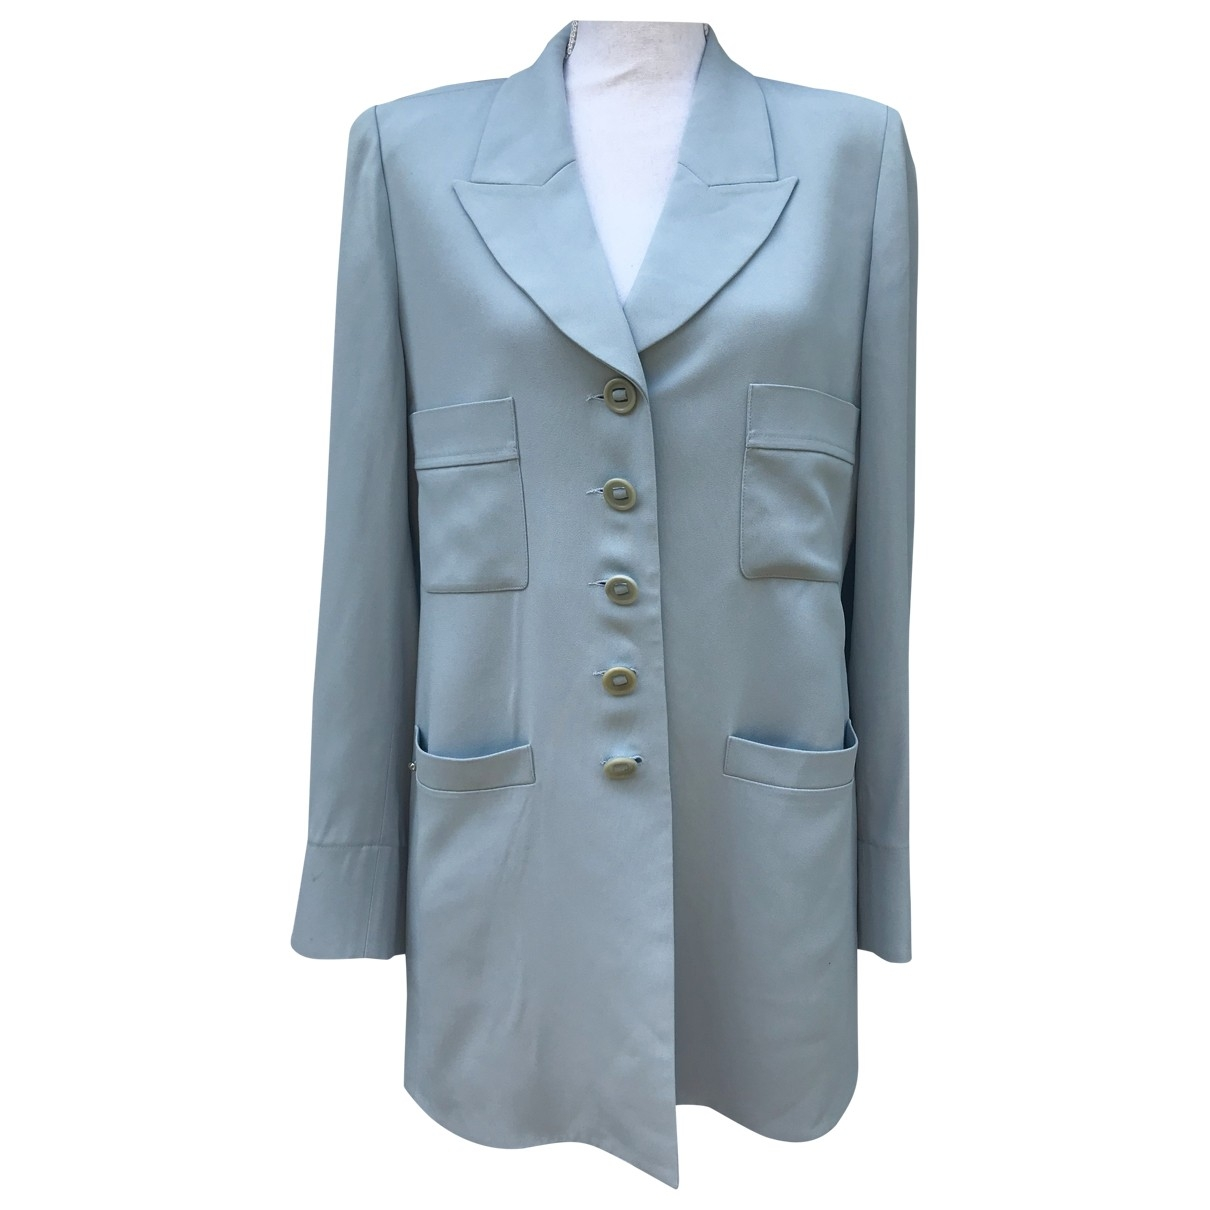 Sonia Rykiel \N Blue jacket for Women M International